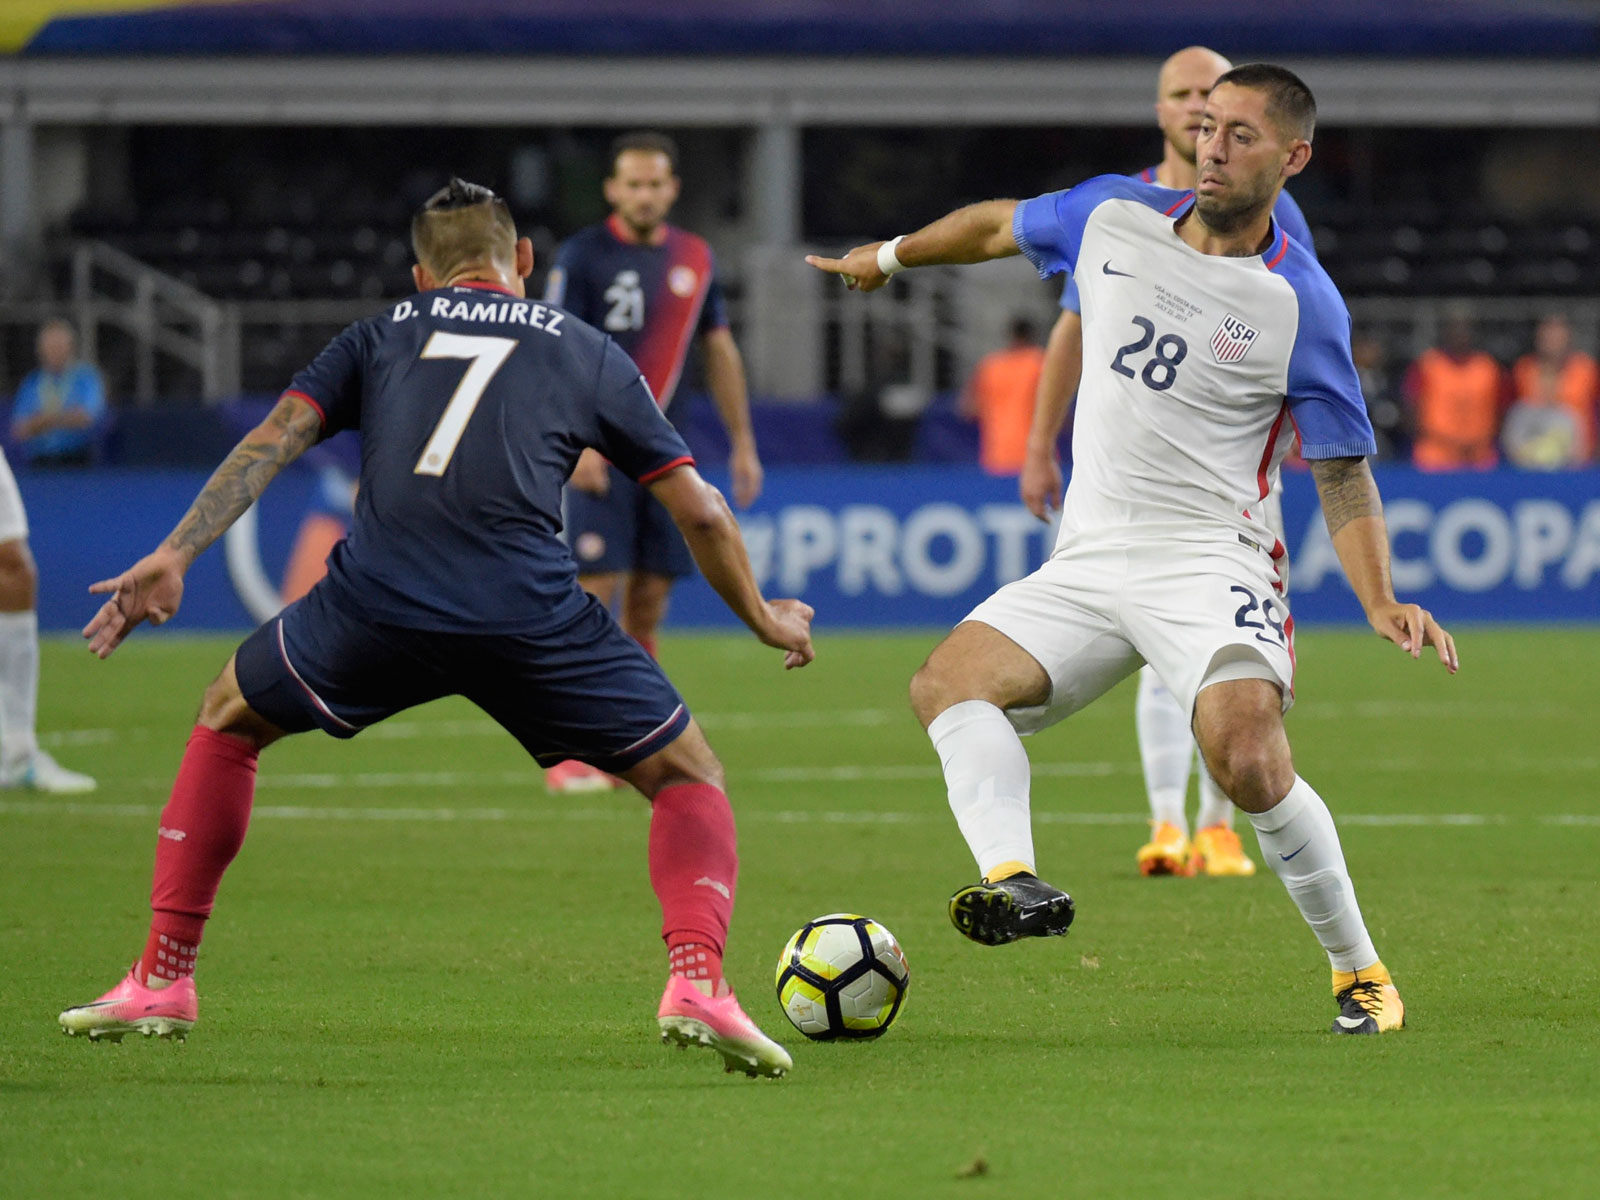 Clint Dempsey and the USA face Costa Rica in a huge World Cup qualifier